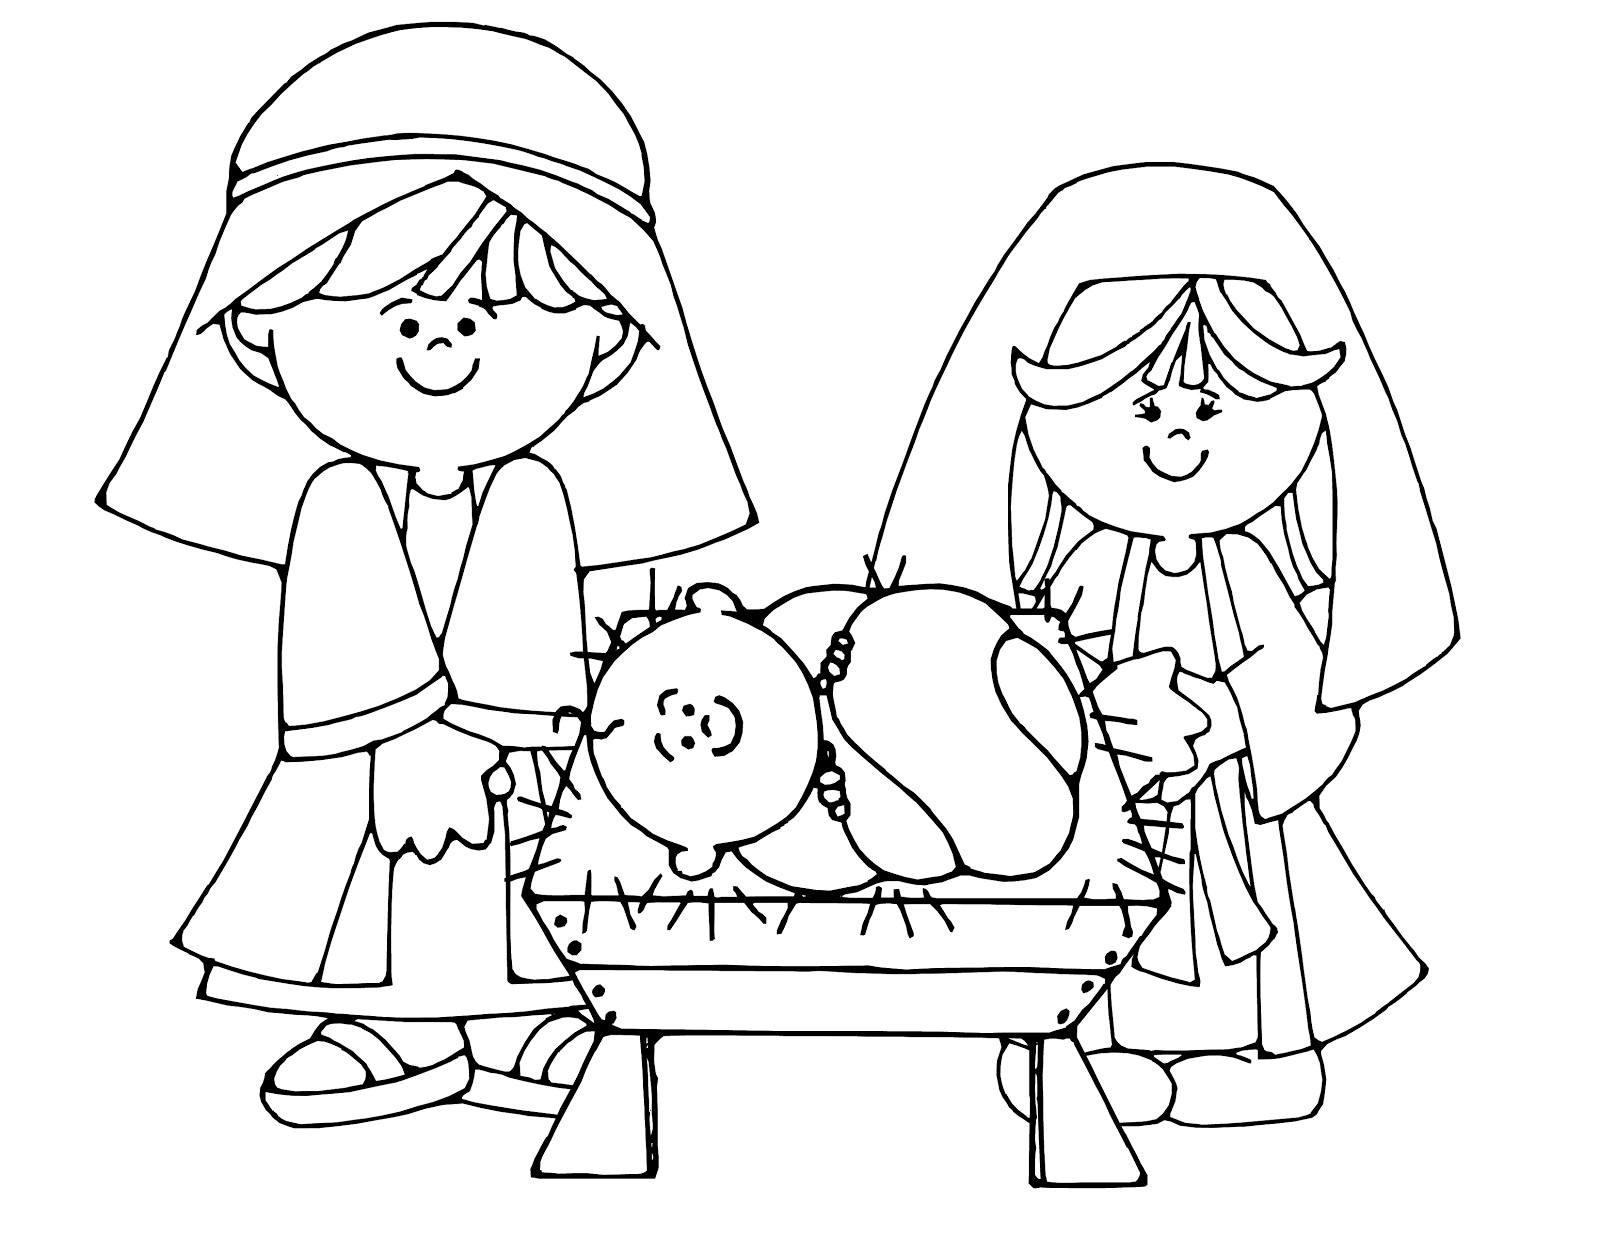 nativity coloring pages for preschool simple nativity scene colouring page | kids crafts | Nativity  nativity coloring pages for preschool